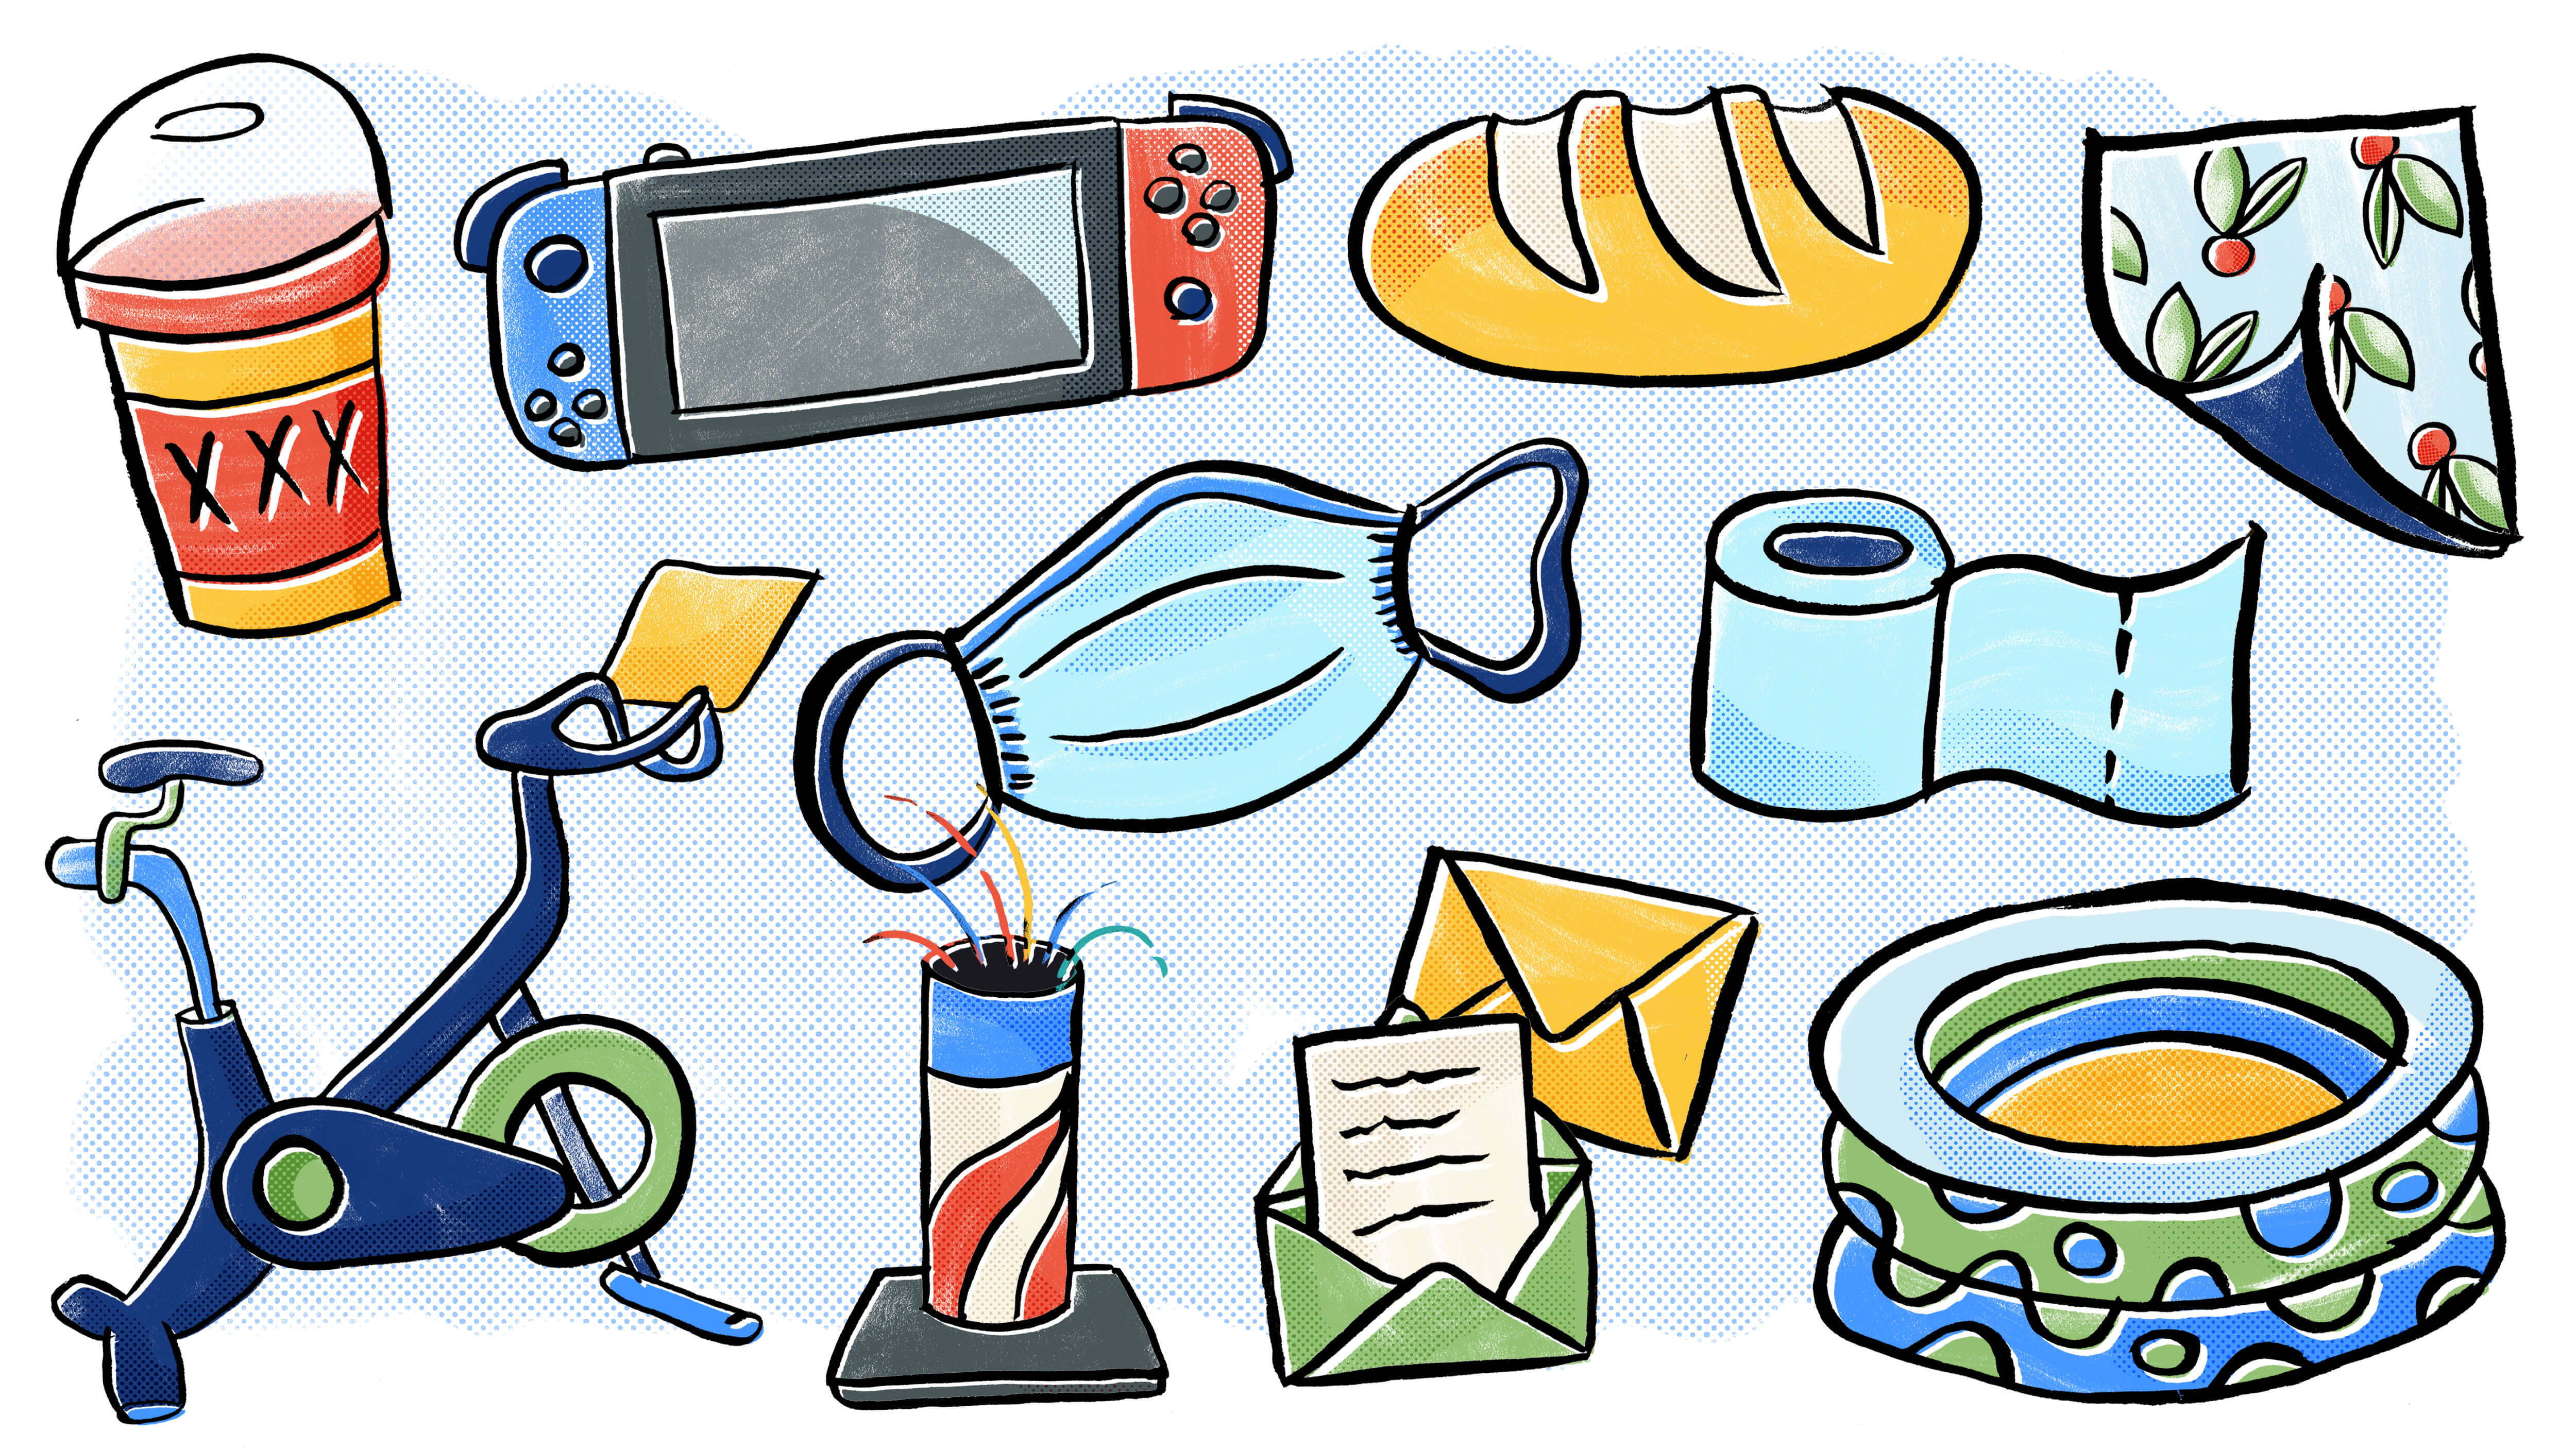 An illustration of a to-go beer, a Nintendo Switch, a Peloton bike, a protective face mask, fireworks, a loaf of bread, toilet paper, envelopes, a kiddie pool, and peel-and-stick wallpaper.